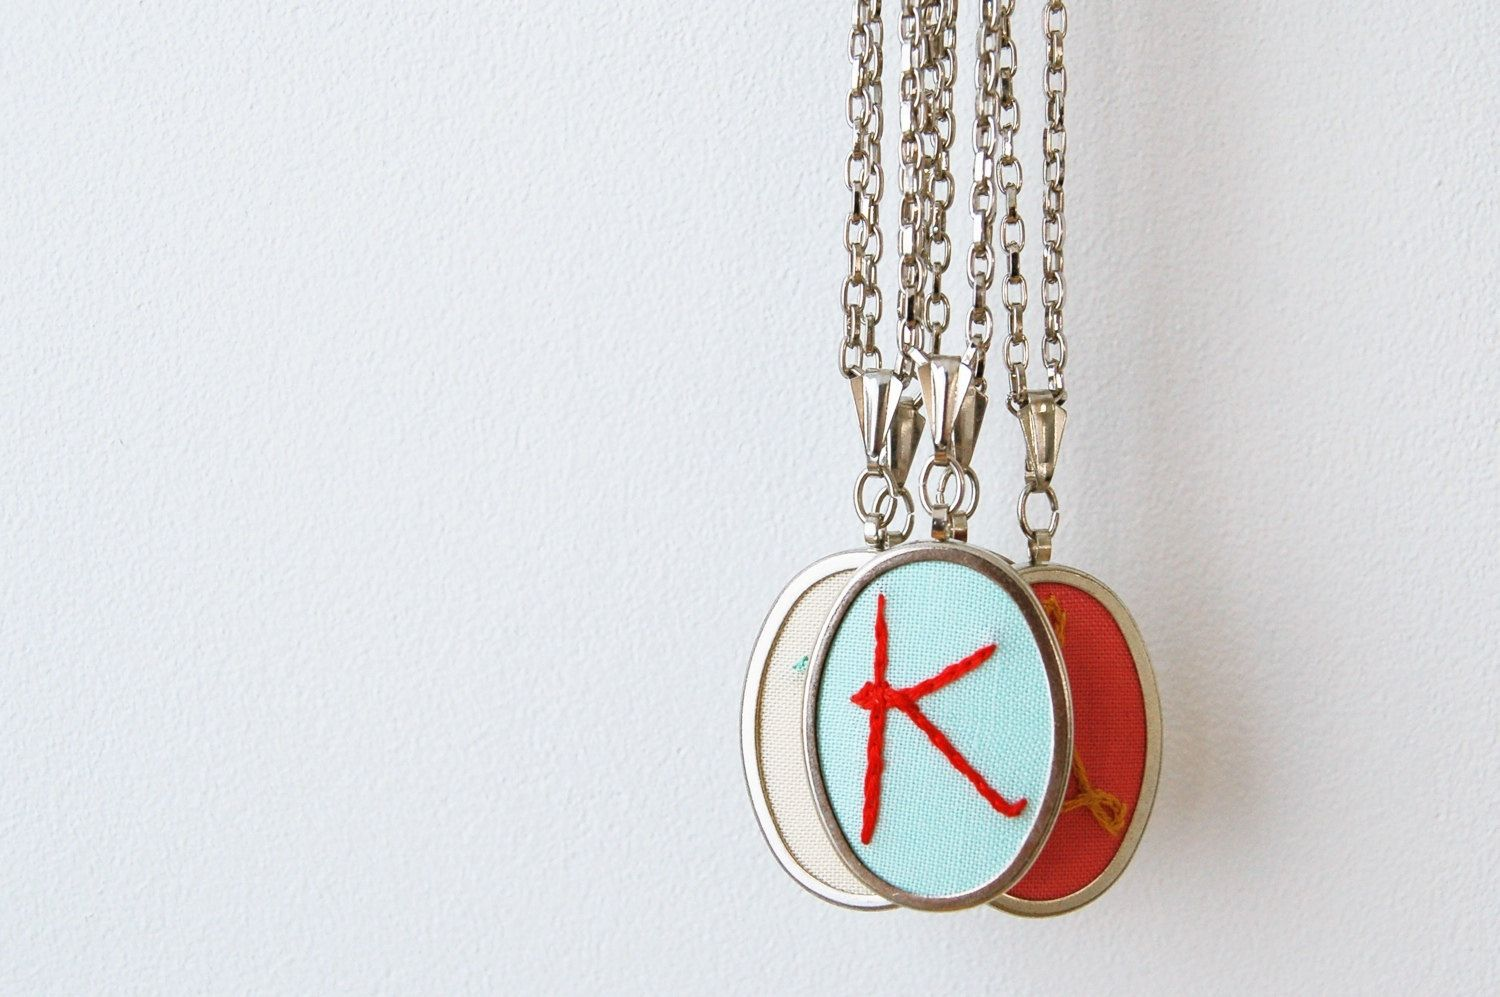 Embroidered Initial Necklace --- 20 INCH CHAIN ---. $41.00, via Etsy.